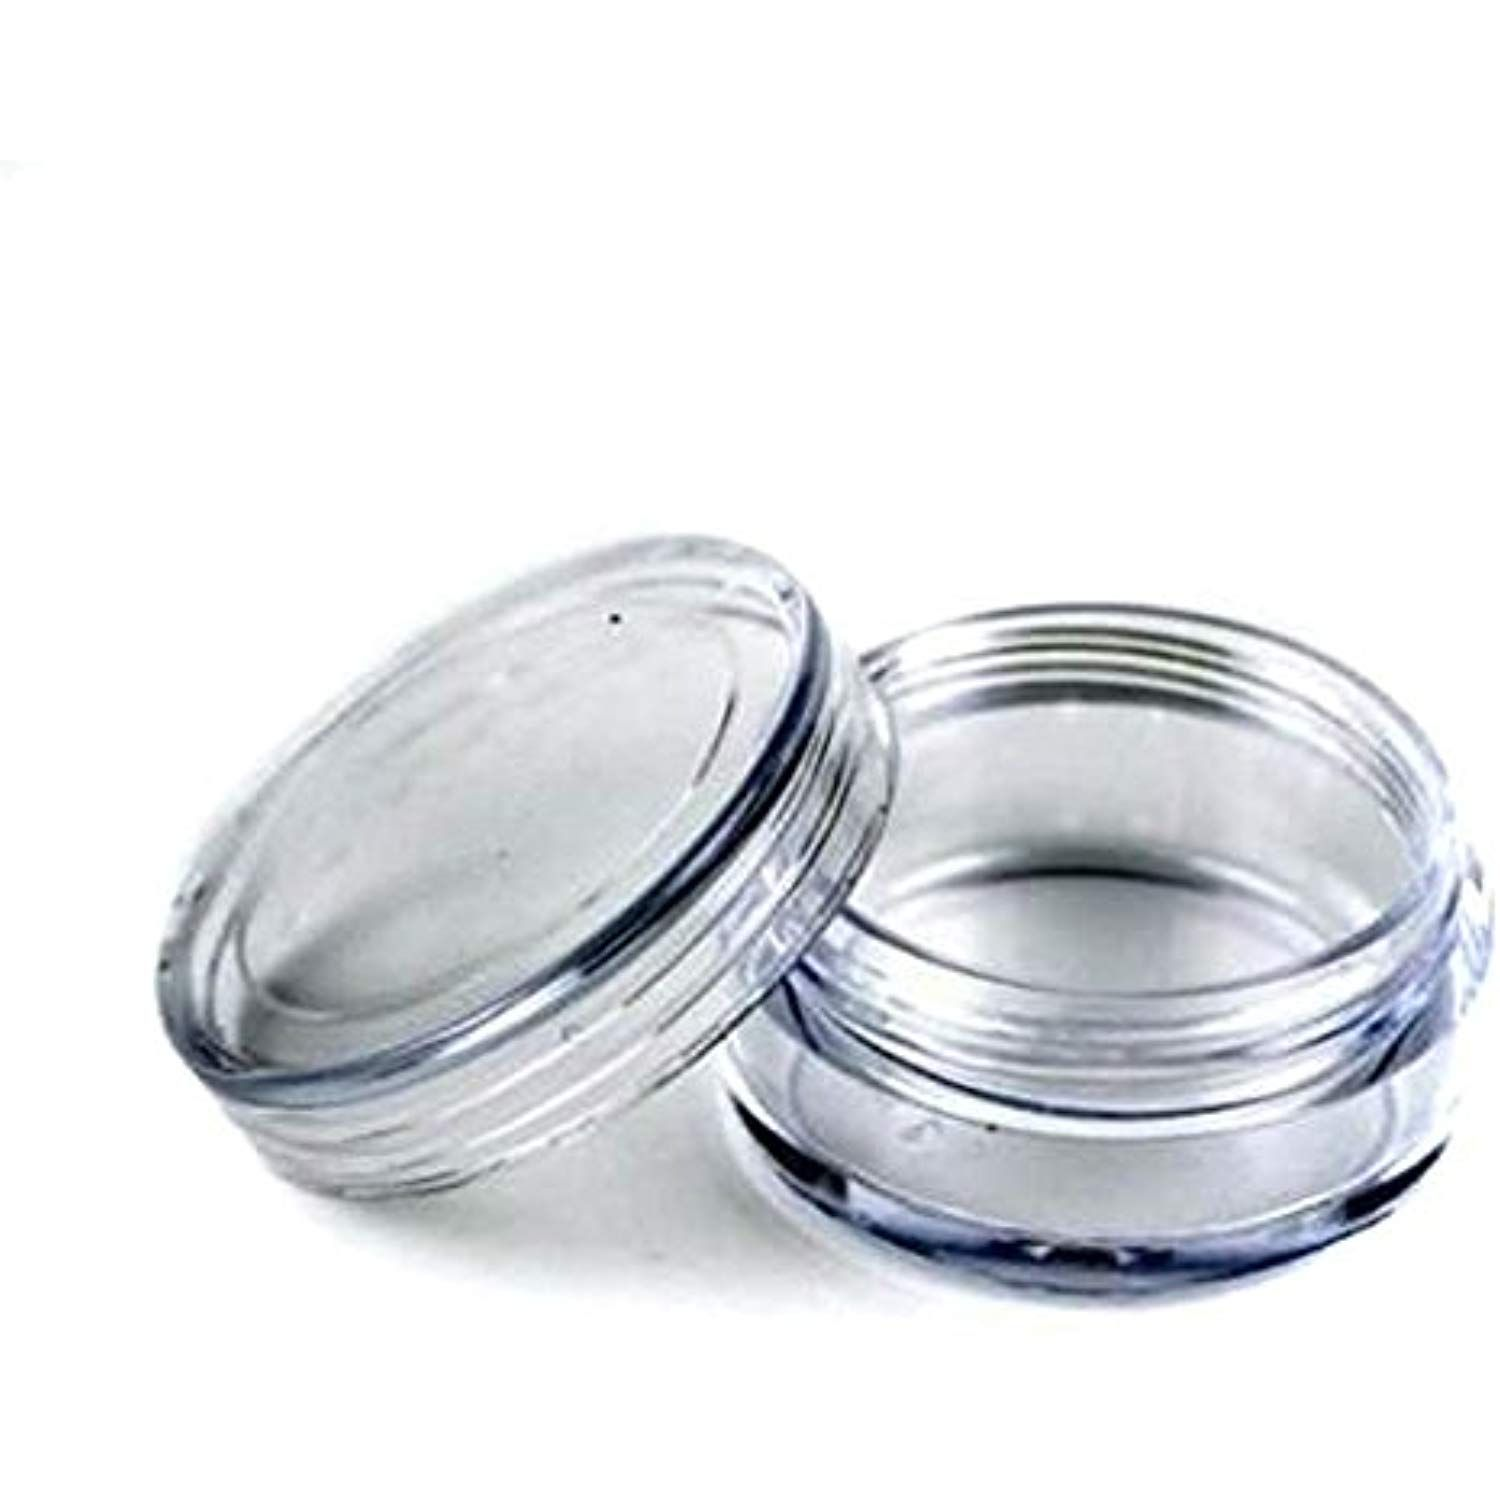 50pcs New Empty Clear Plastic Cosmetic Containers 3 Gram Size Pot Jars Eye Shadow Container Lot Size Di Cosmetic Containers Vanilla Lip Balm Homemade Lip Balm